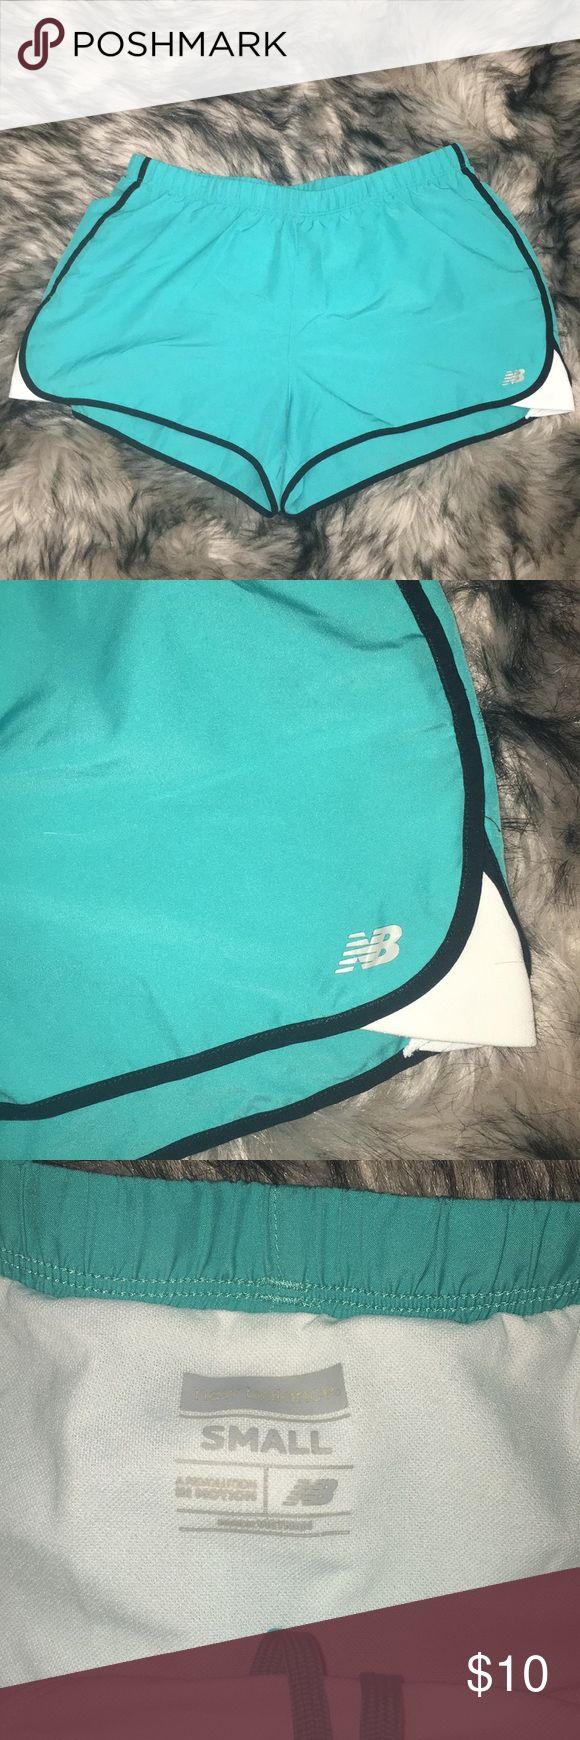 New balance work out shorts New balance teal shorts - with the underwear lining New Balance Shorts